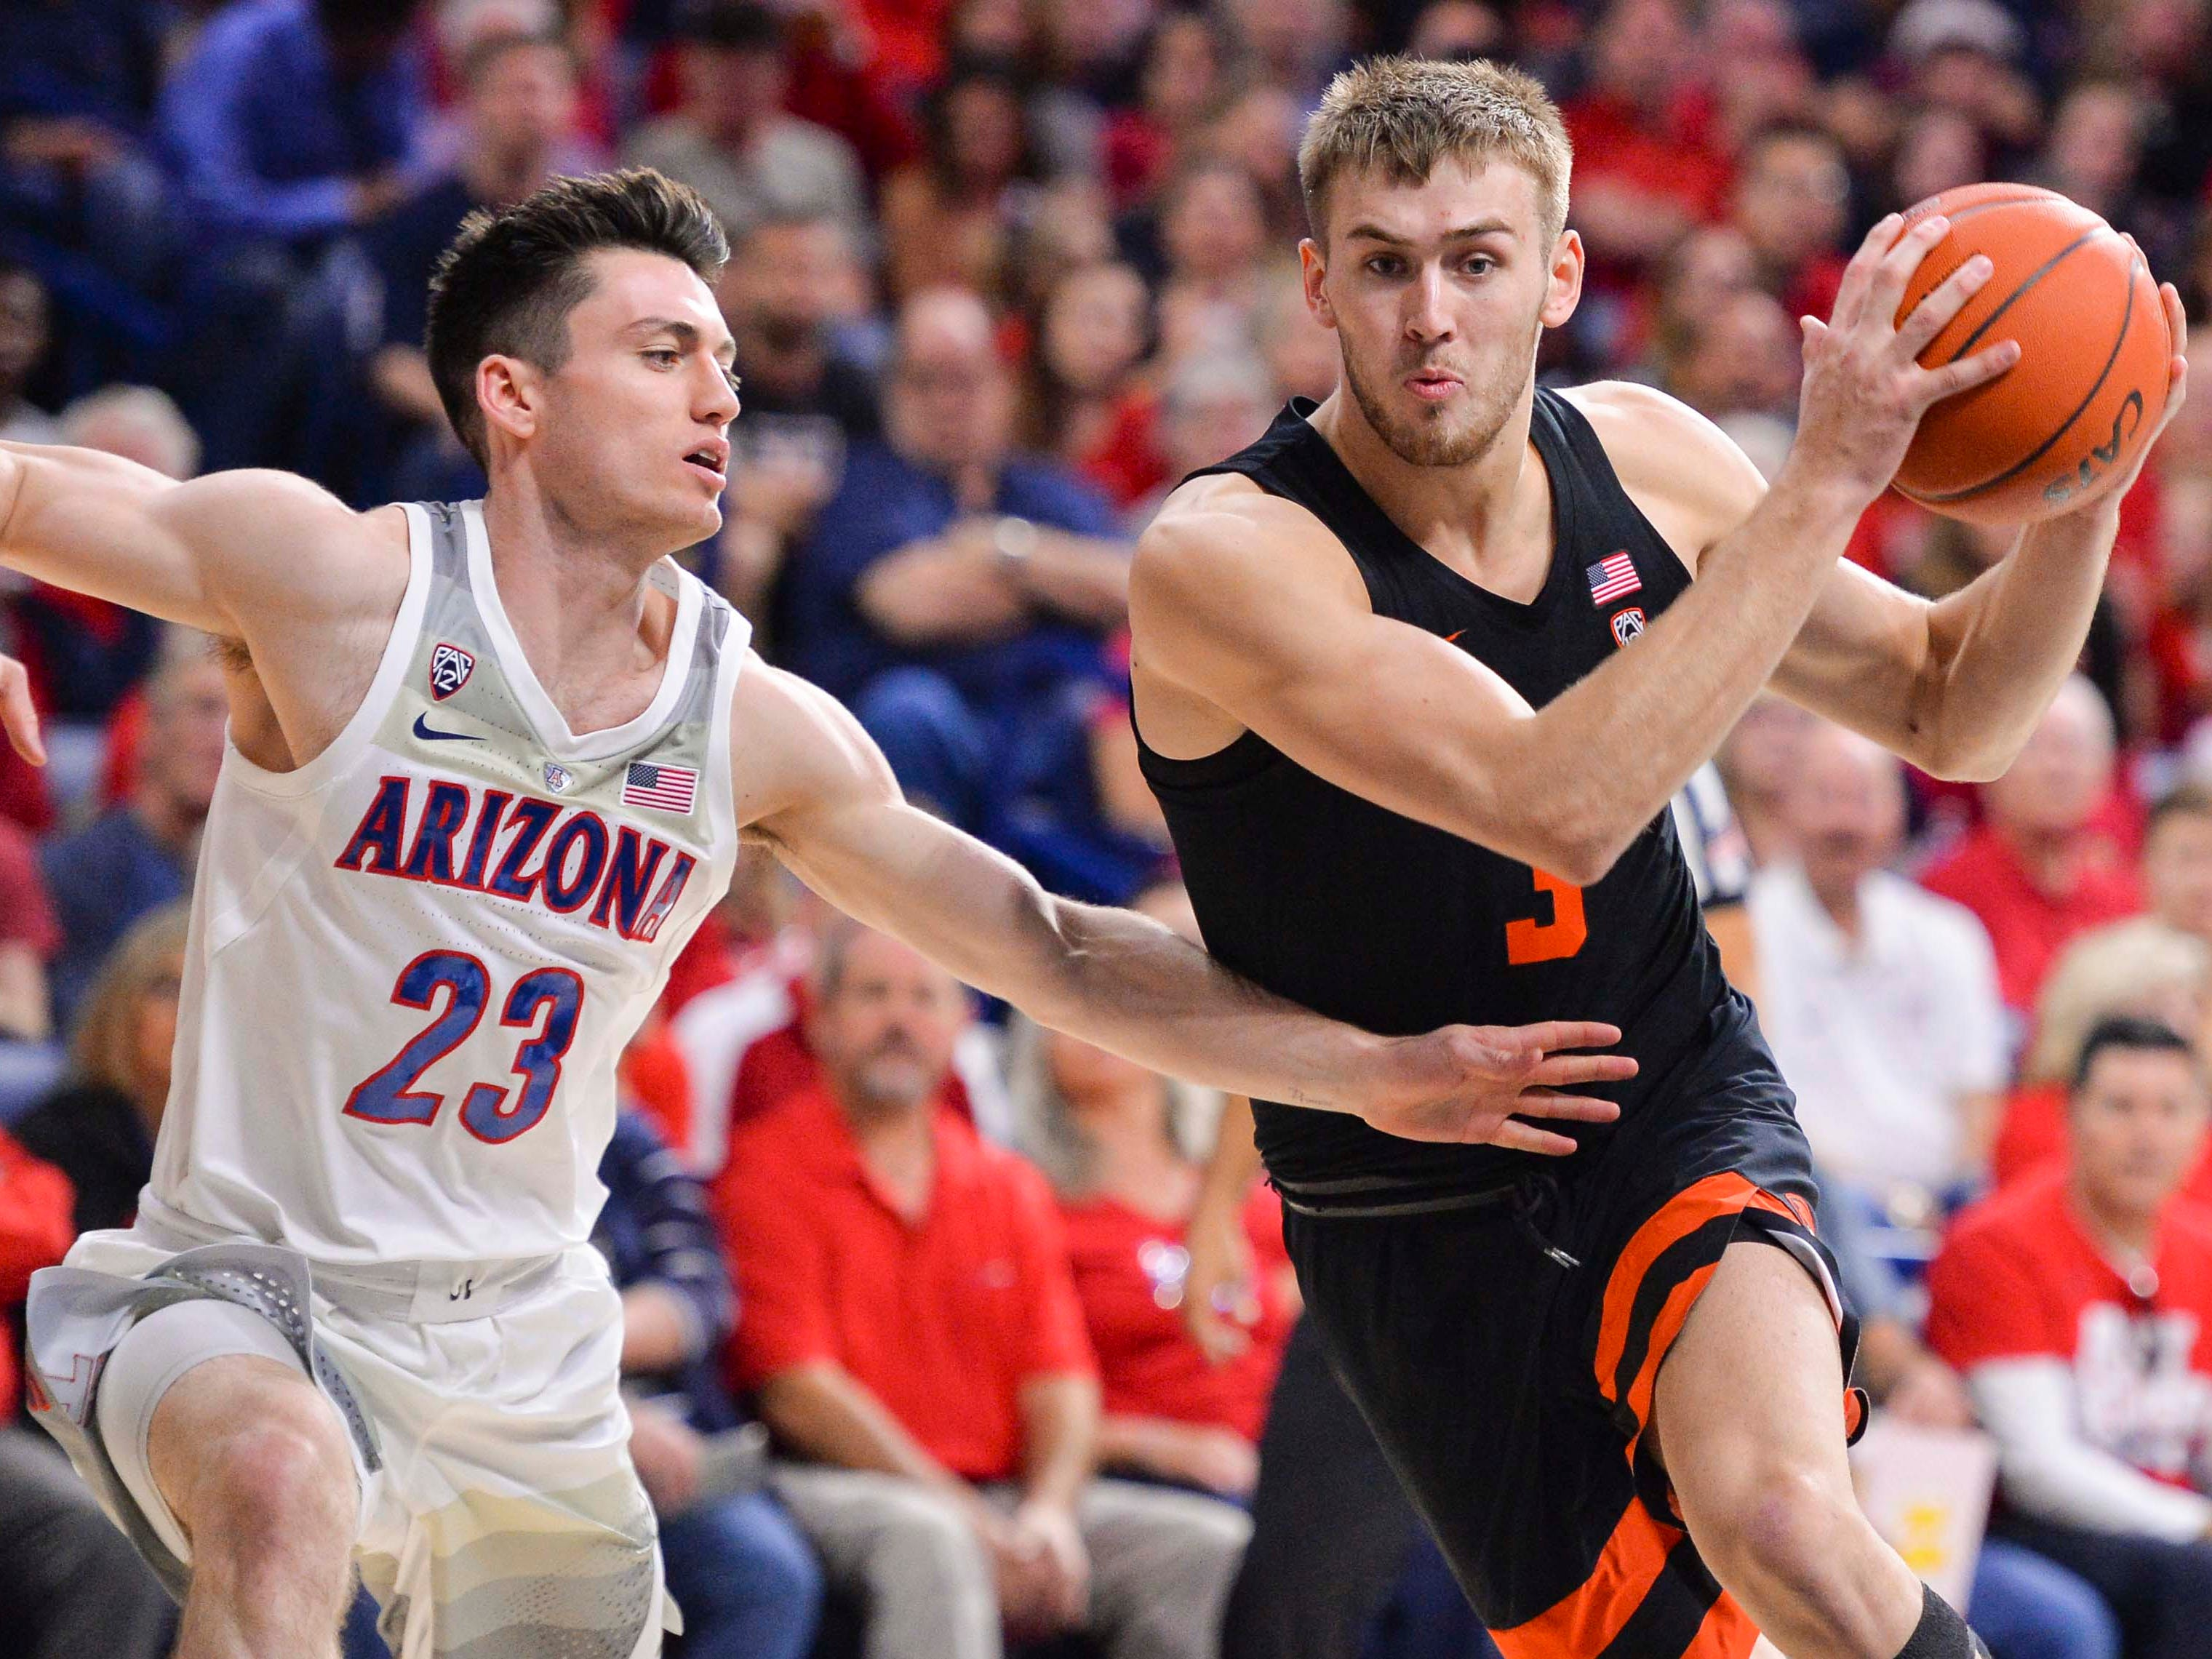 Jan 19, 2019; Tucson, AZ, USA; Arizona Wildcats guard Alex Barcello (23) defends Oregon State Beavers forward Tres Tinkle (3) during the first half at McKale Center. Mandatory Credit: Casey Sapio-USA TODAY Sports